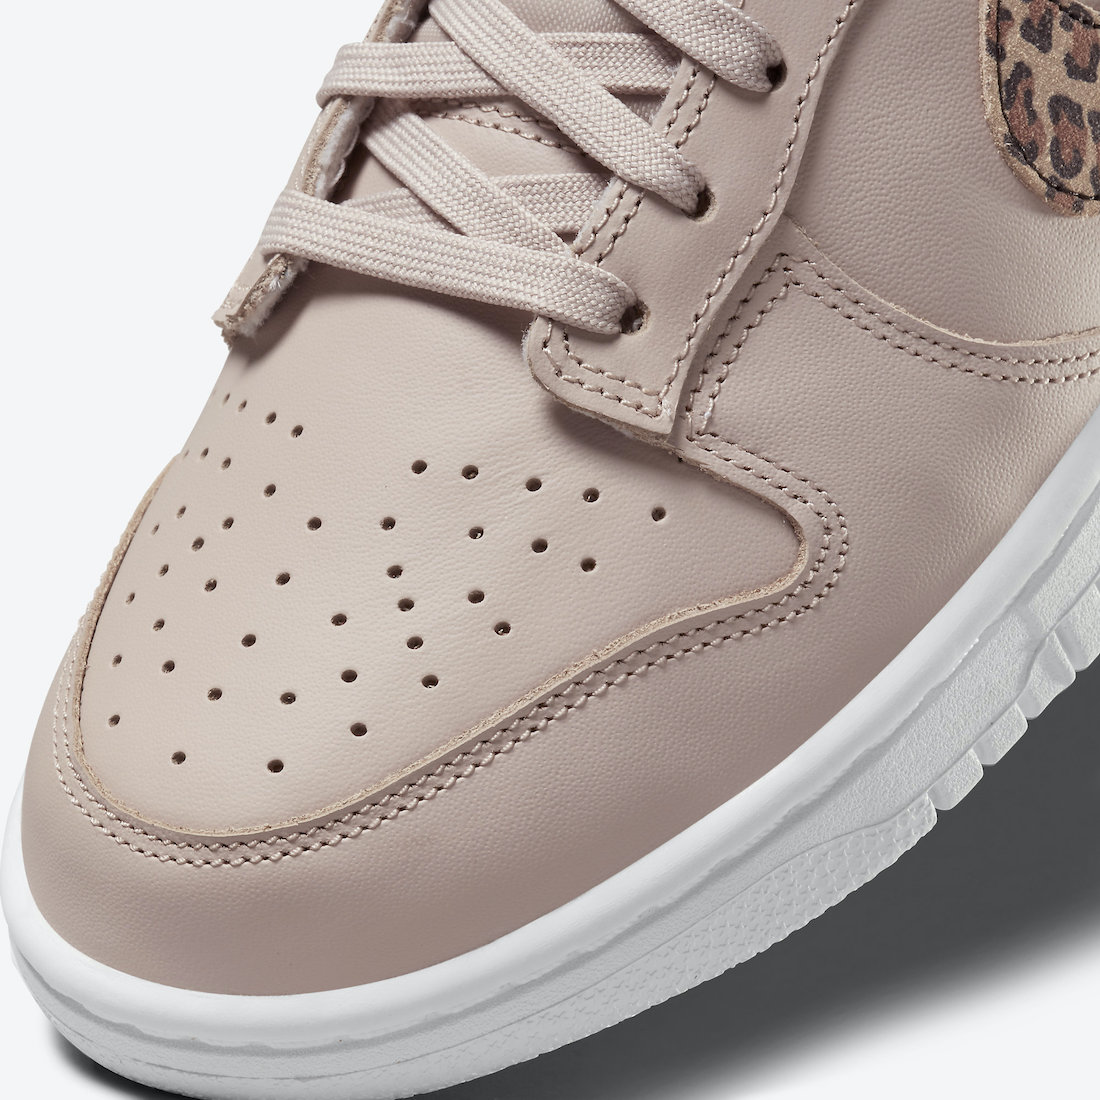 Nike Dunk Low Animal Pack Dusty Pink Closer Look